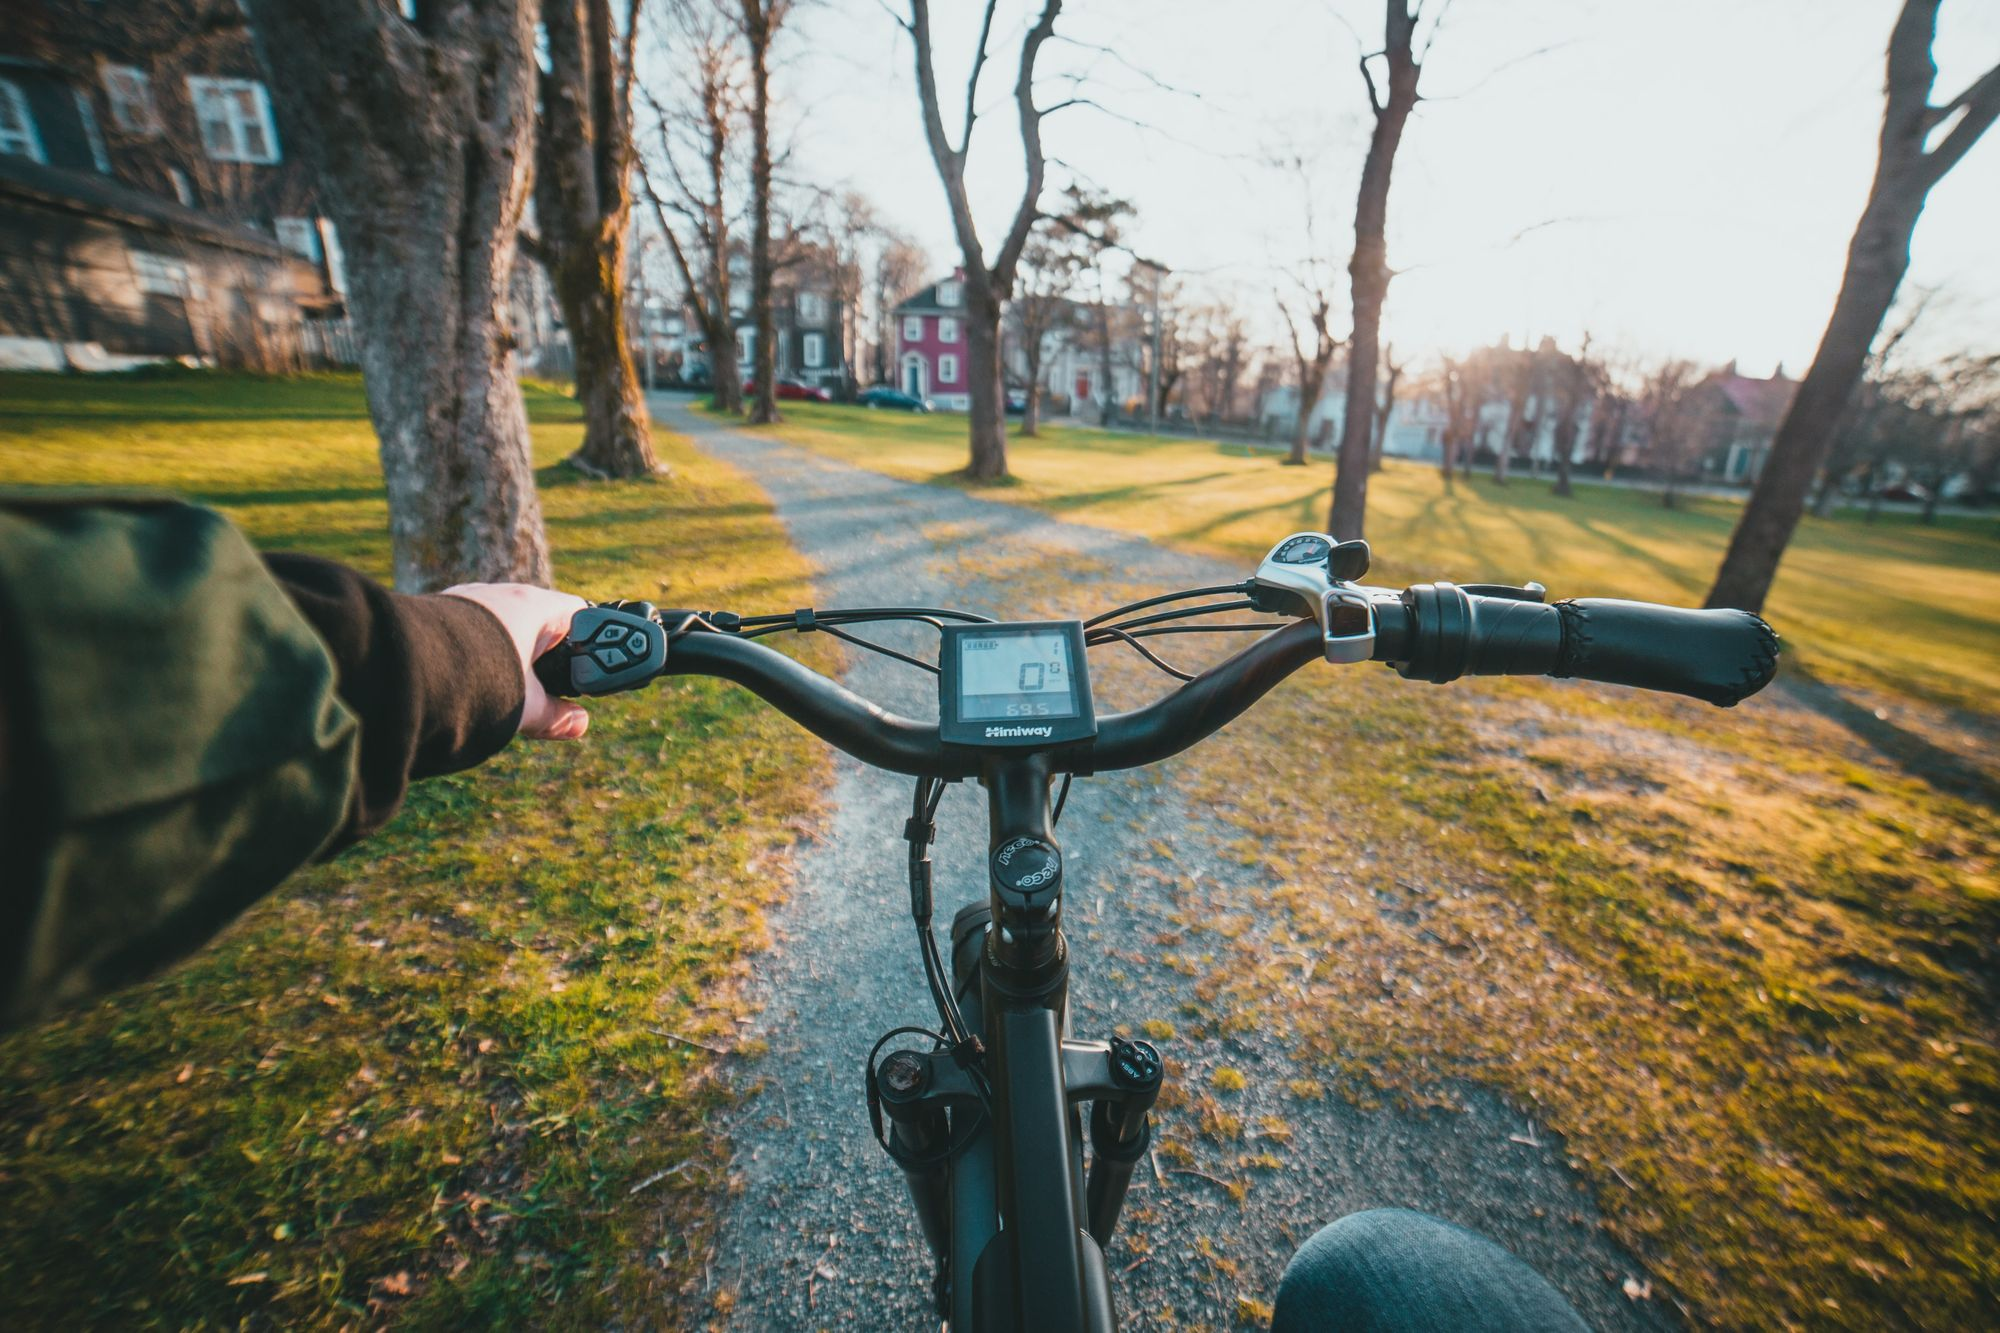 E-bike insurance: What's the law?